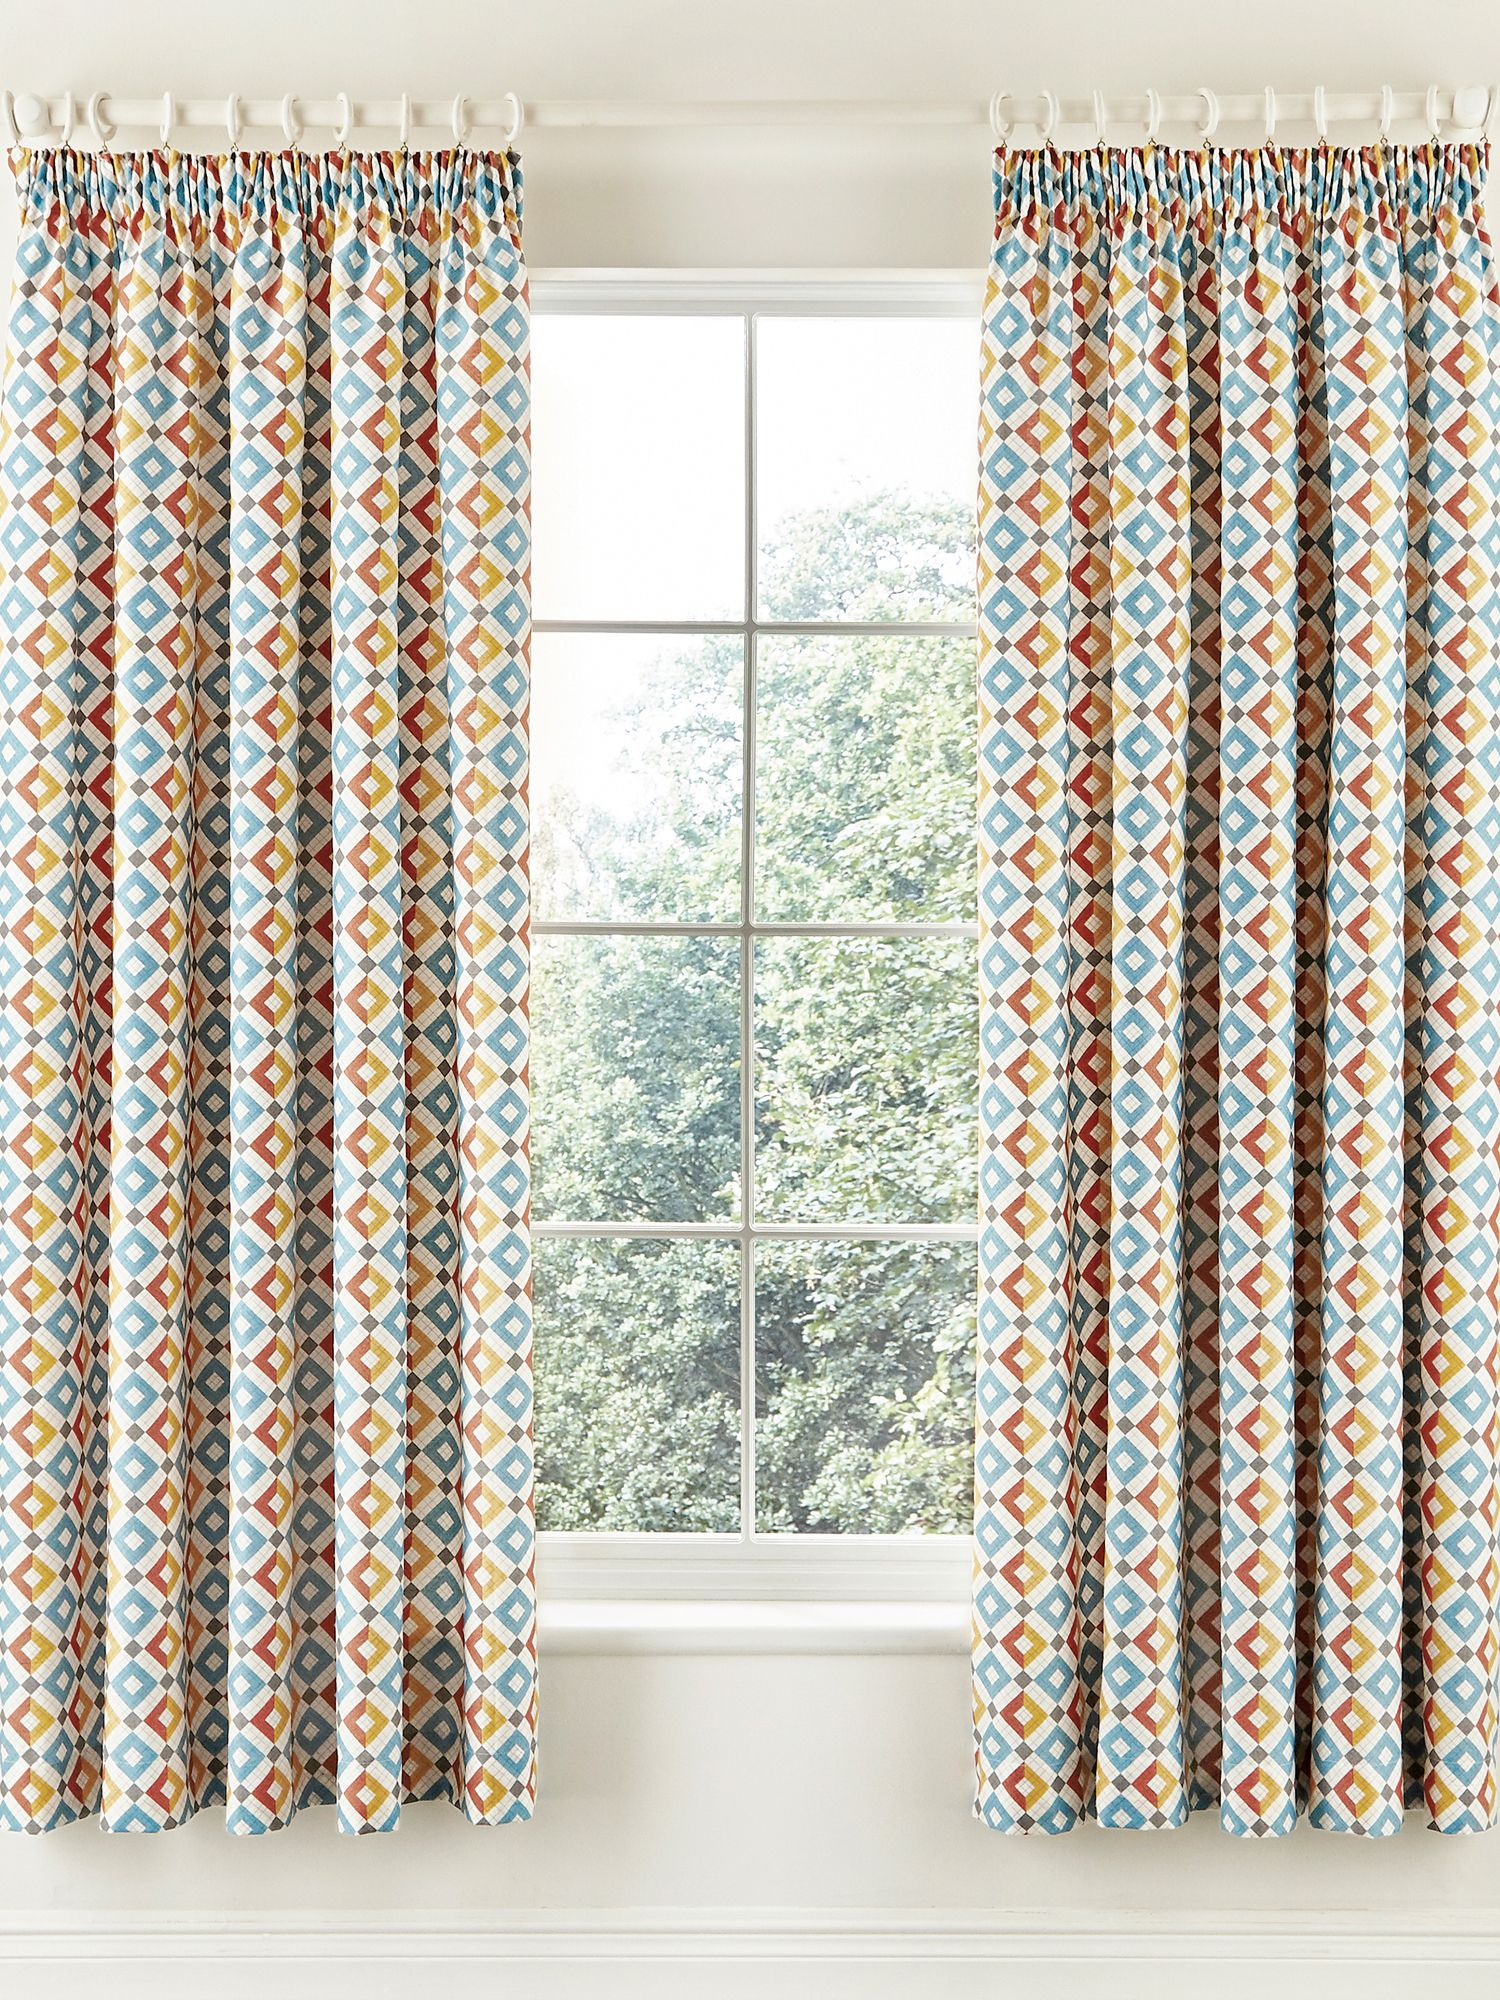 Lace Eyelet Curtains - V a pompeii curtains 66x72in multi coloured